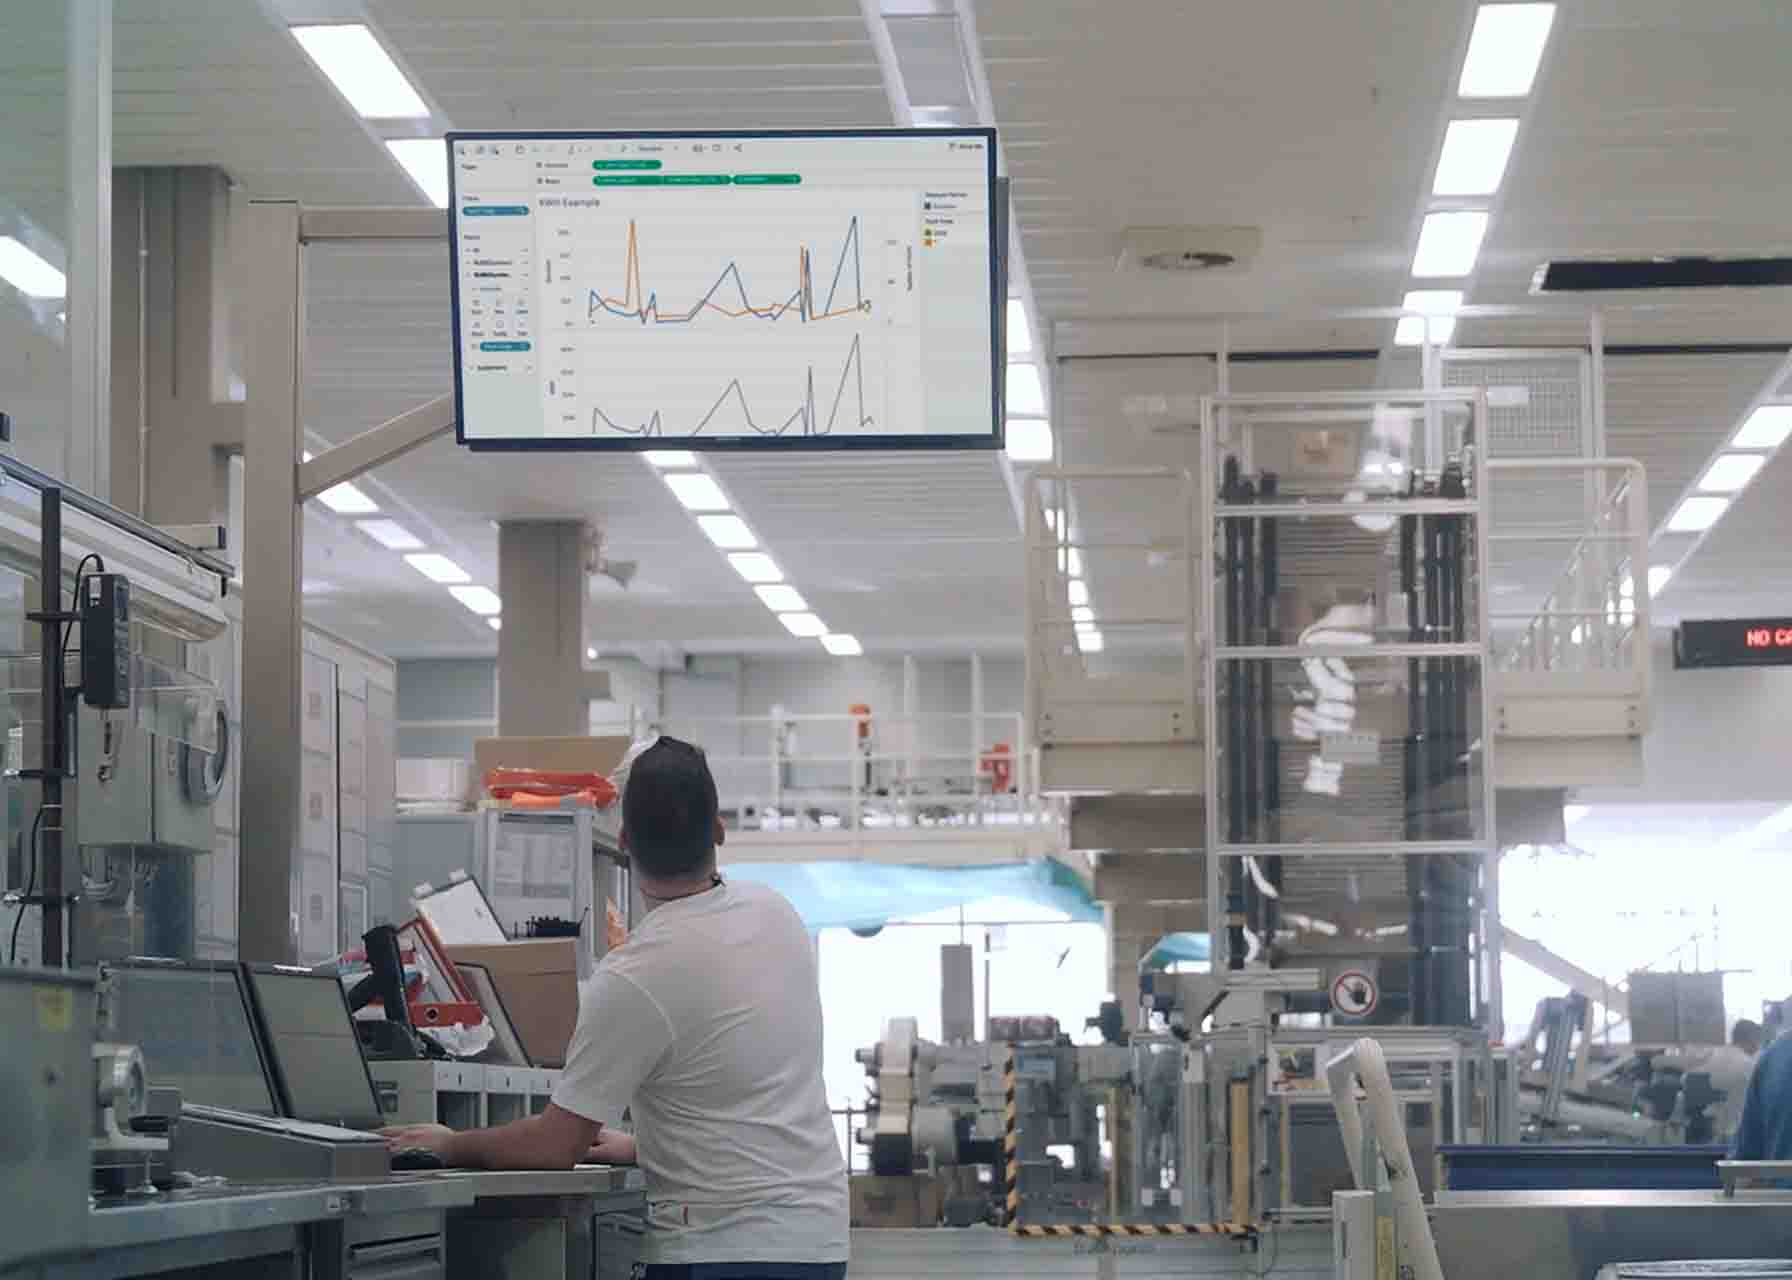 MES software | Operator using GE Digital software in industrial environment